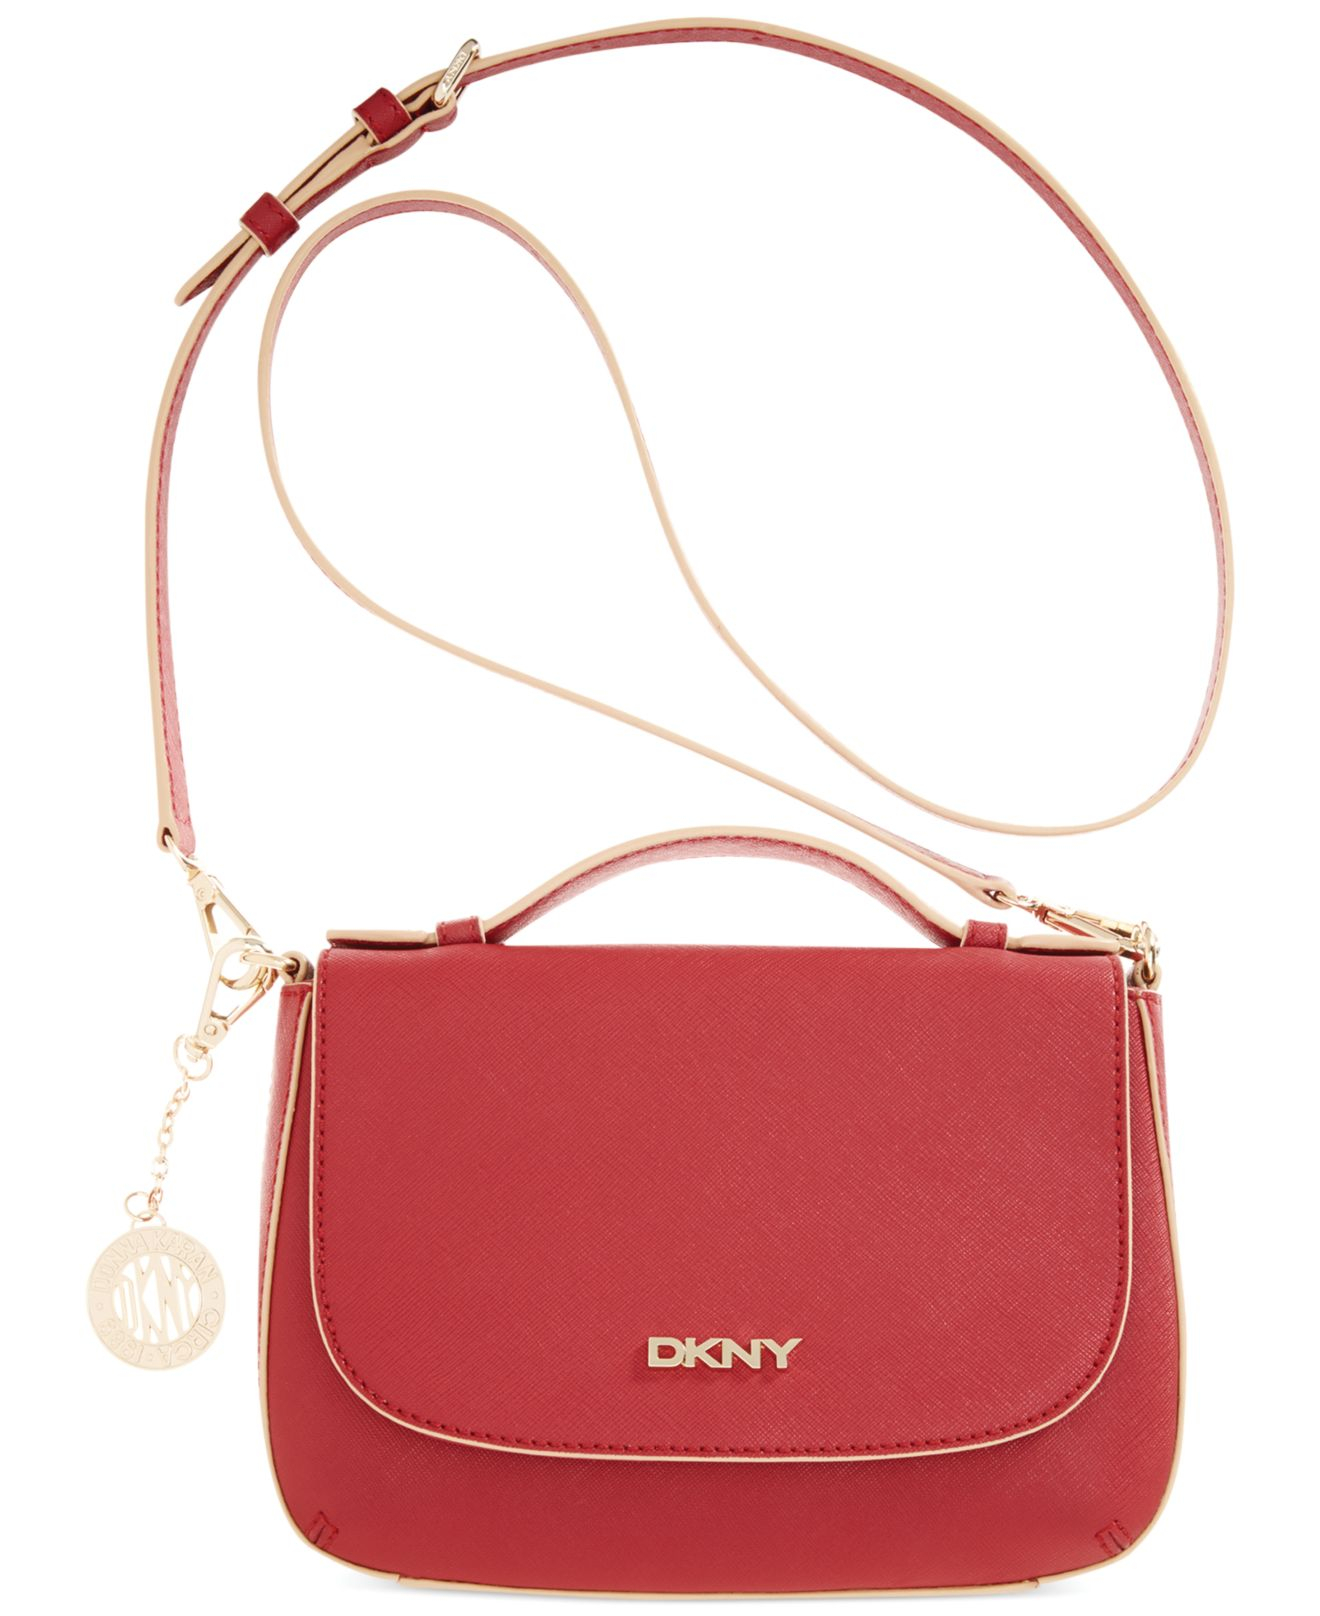 dkny bryant park saffiano flap crossbody in red lyst. Black Bedroom Furniture Sets. Home Design Ideas